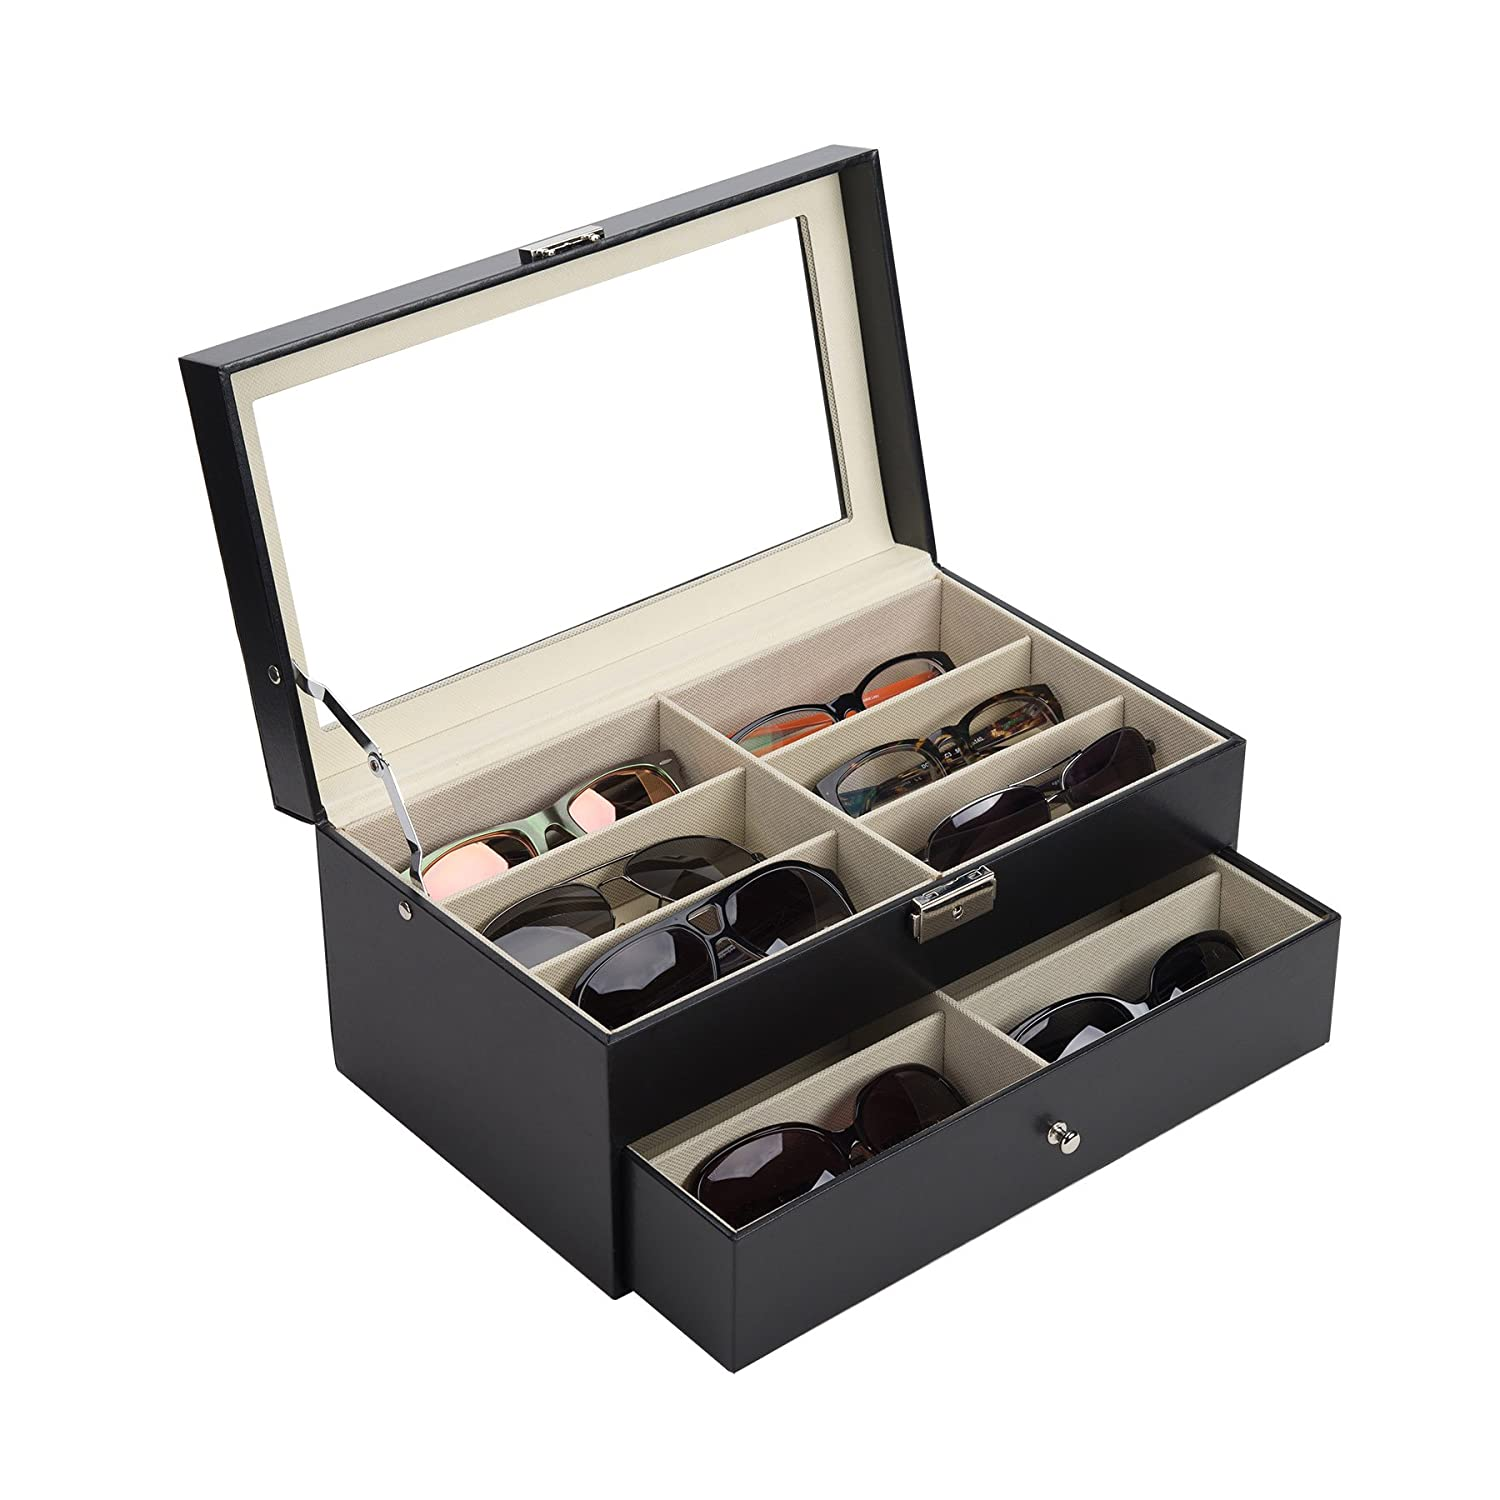 CO-Z Leather Multi Sunglasses Organizer for Women Men, Multiple Eyeglasses Eyewear Display Case, Sunglasses Collection Case, Sunglass Glasses Storage Holder Box with 12 Slots (12 Compartments)